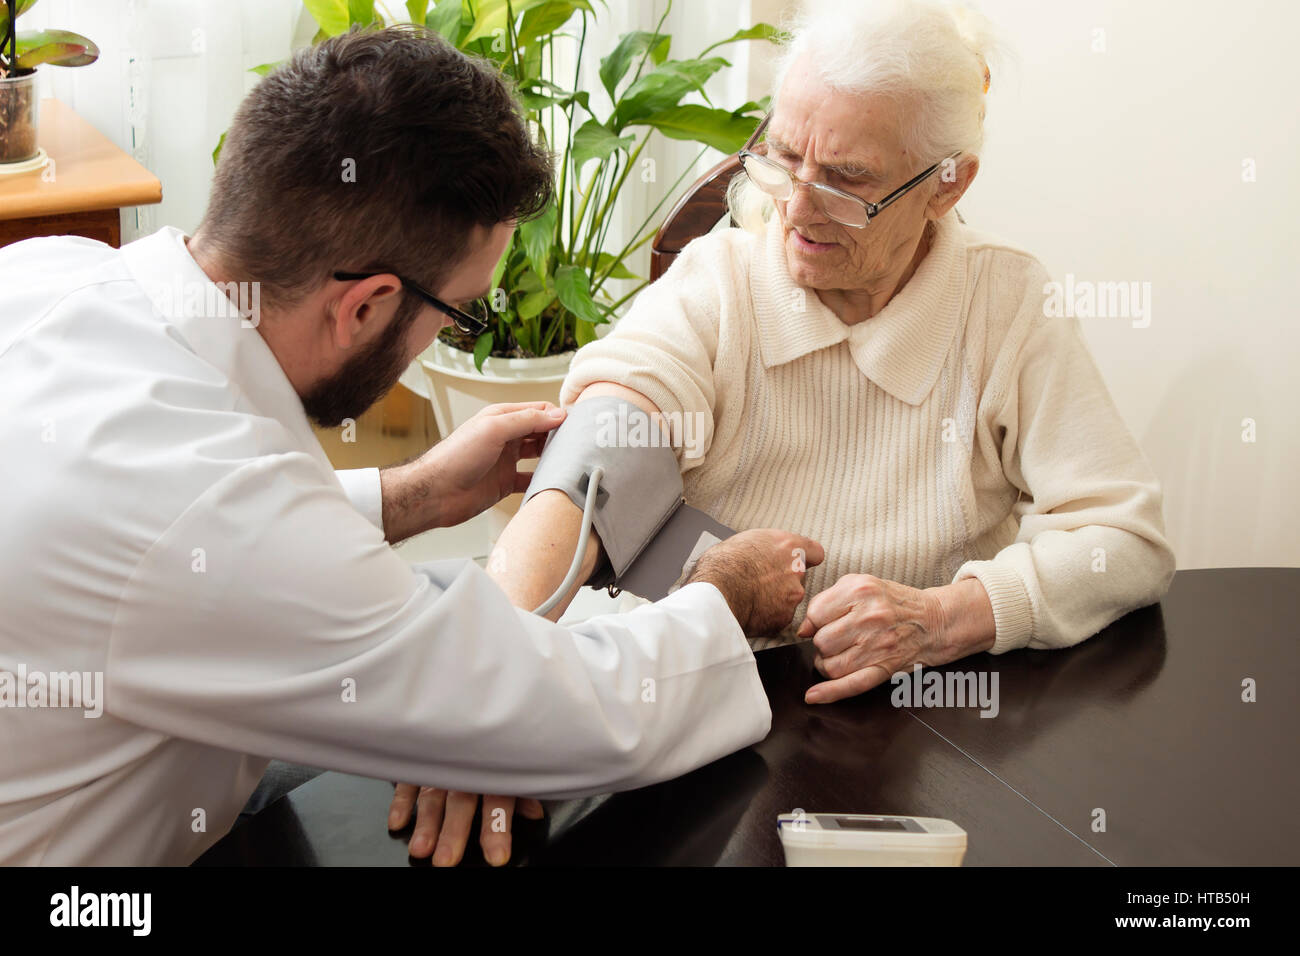 A private doctor's office. Geriatrician doctor takes the patient and measure her blood pressure. - Stock Image